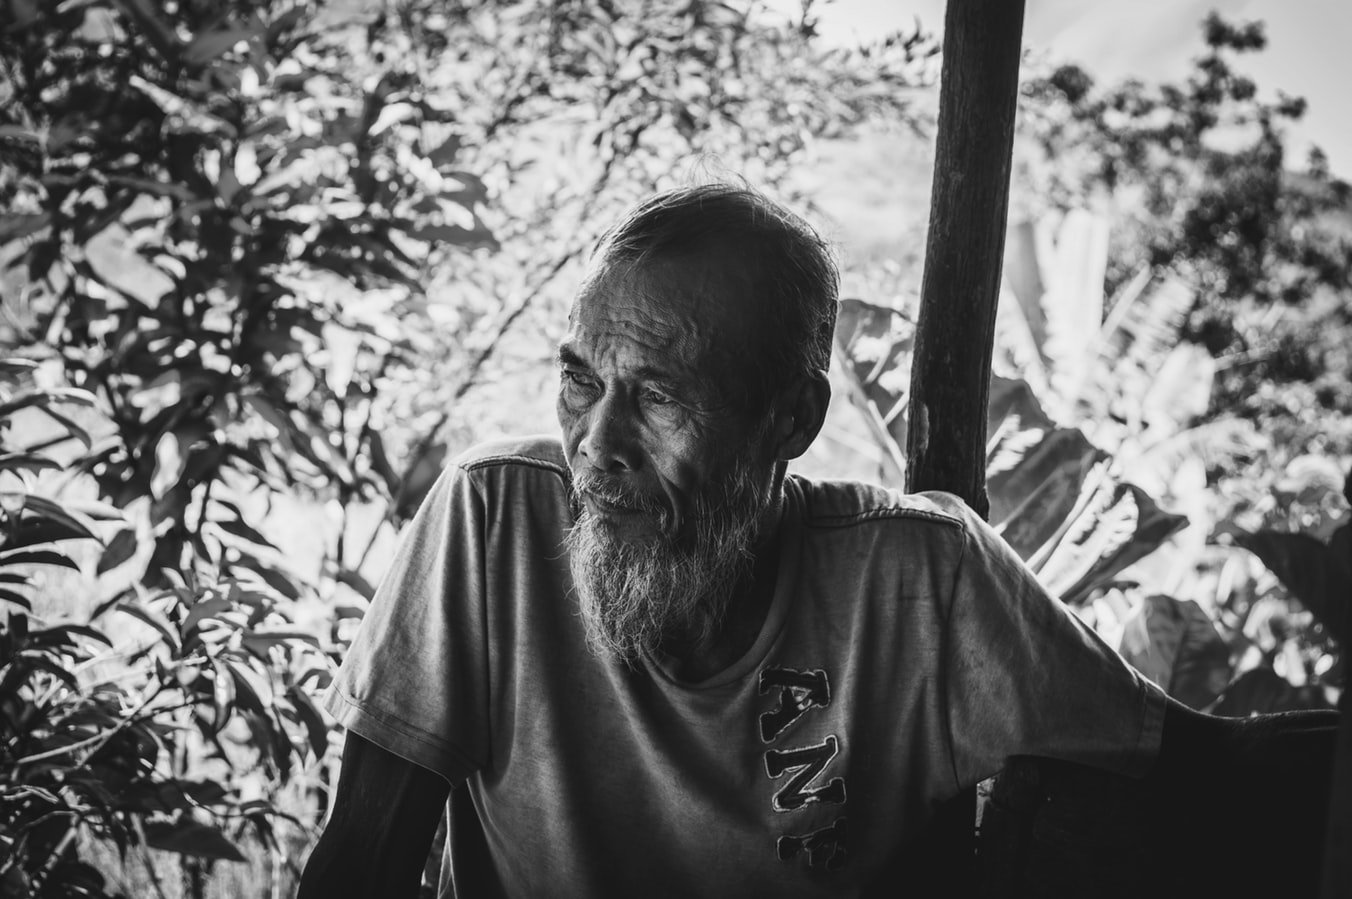 An older man thinking about what is assisted living.